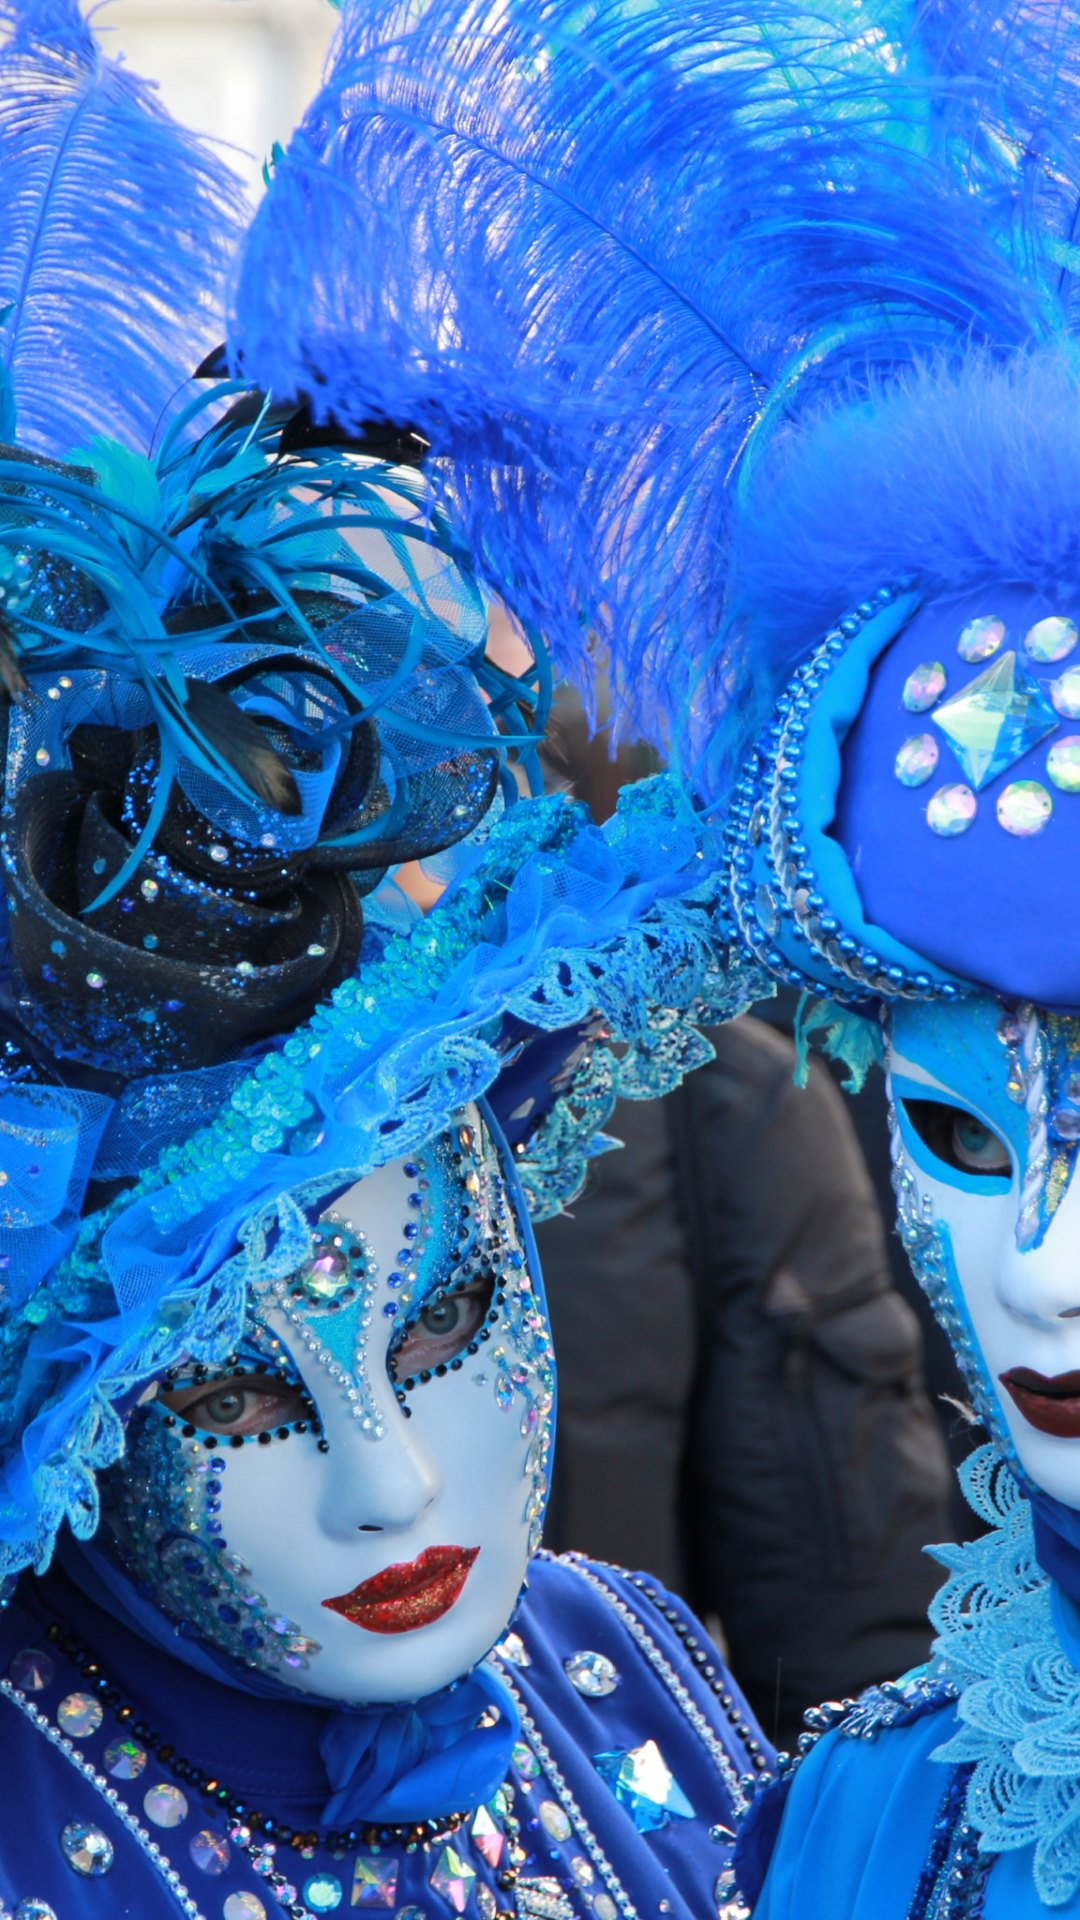 4k carnival wallpapers high quality download free - Carnival wallpaper ...